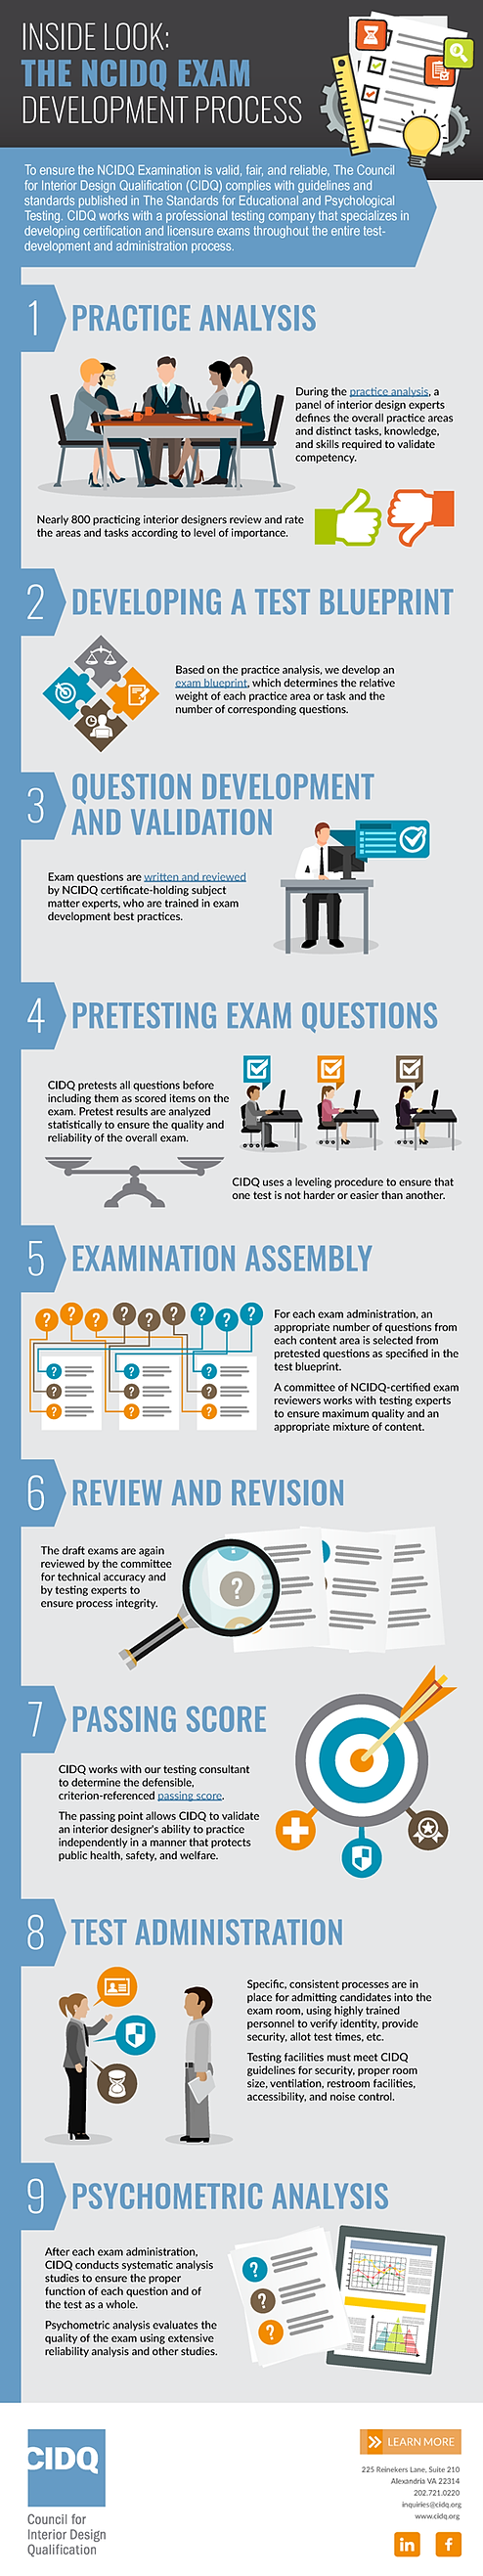 HOW THE NCIDQ EXAM IS DEVELOPED